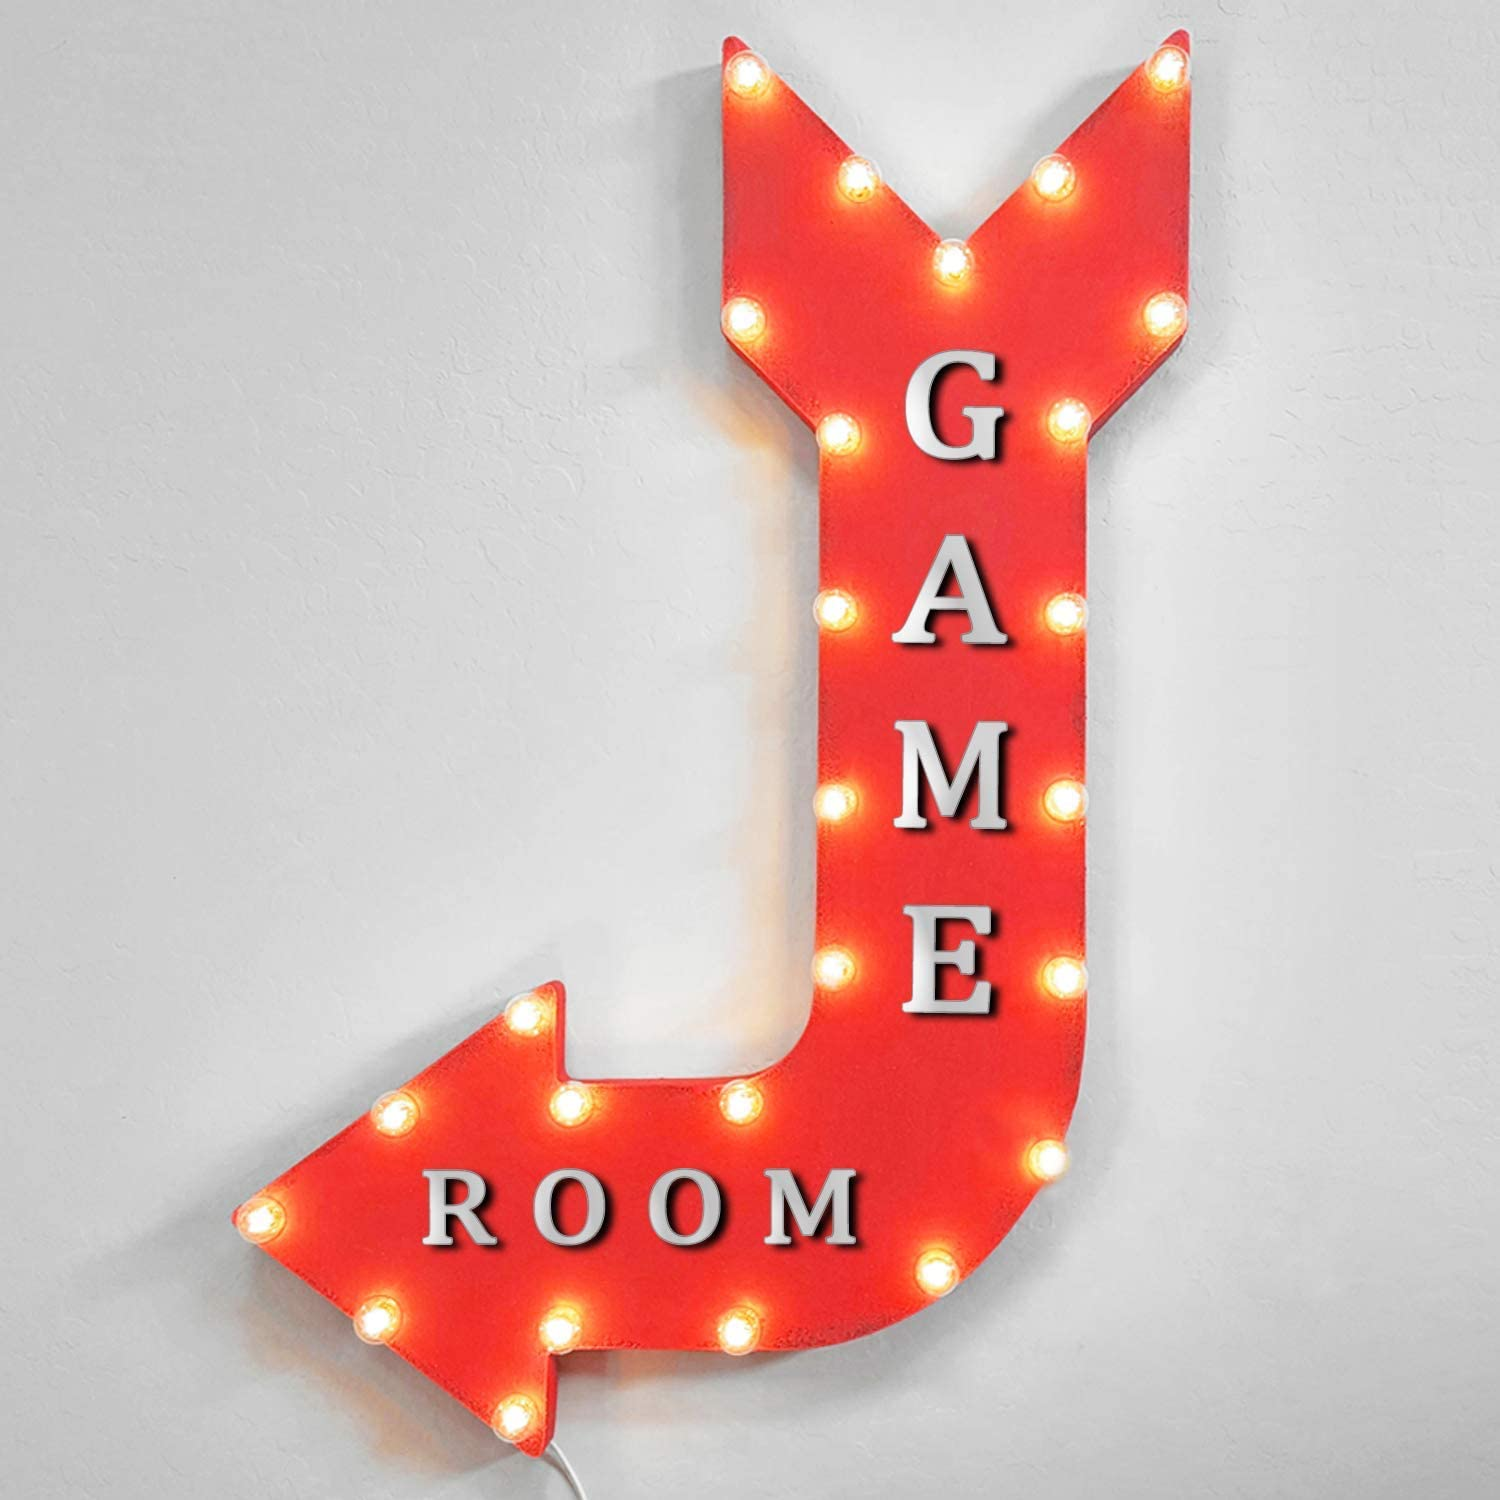 Max 88% OFF Game Room Gaming Mesa Mall Gamer Arcade Rustic Marquee Light Metal Up Arro